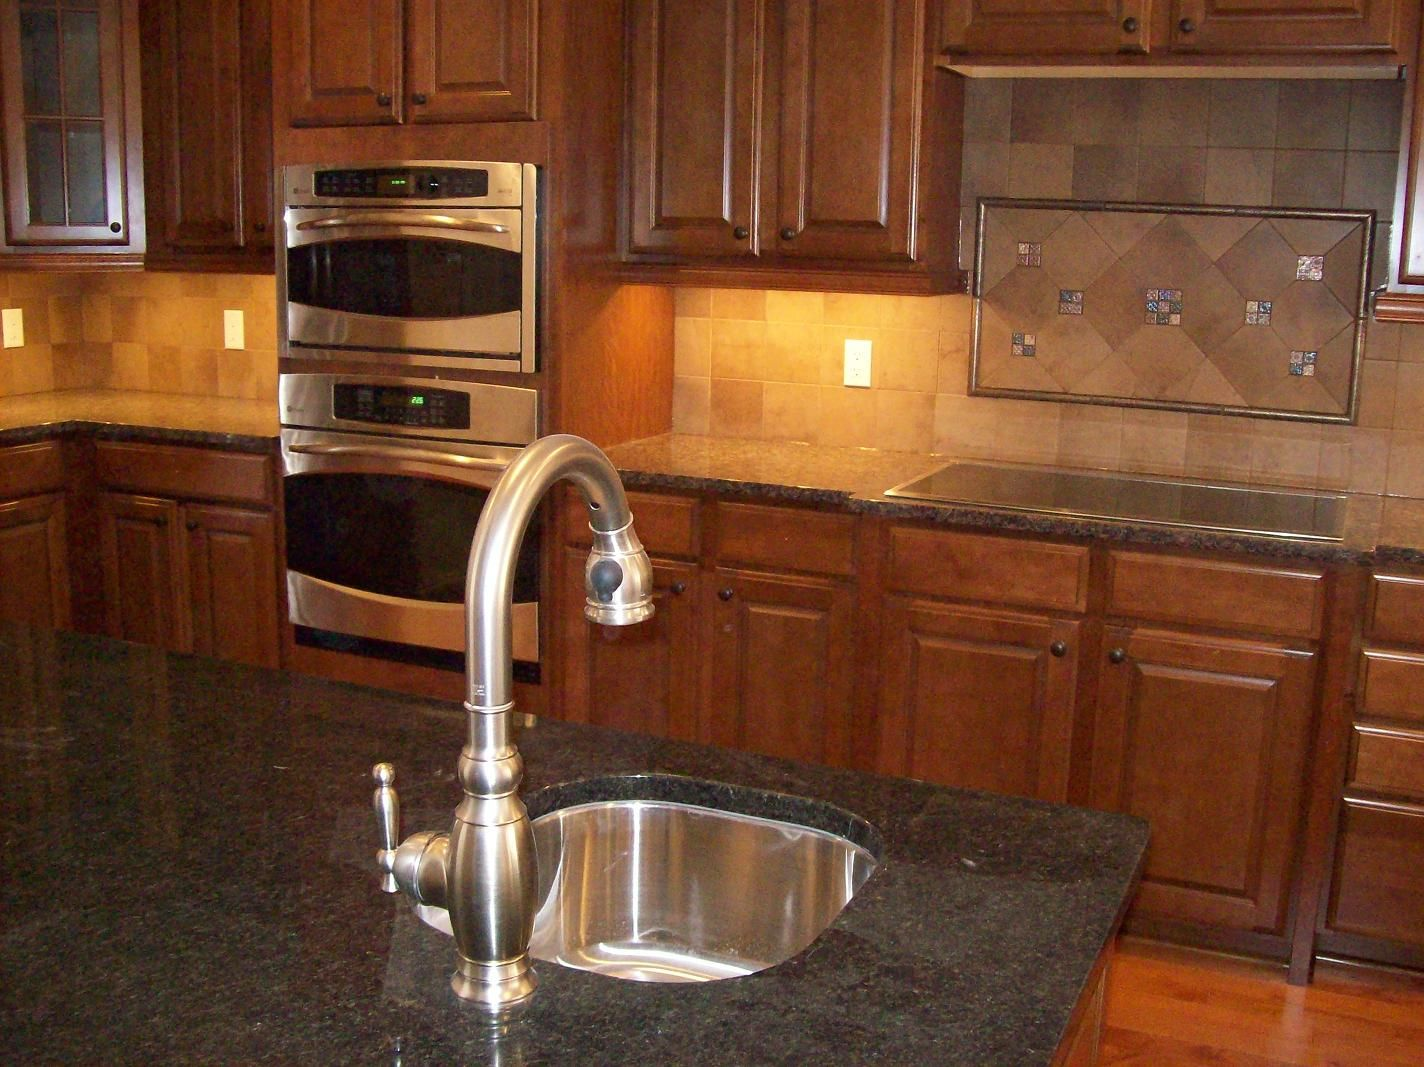 10 simple backsplash ideas for your kitchen backsplash